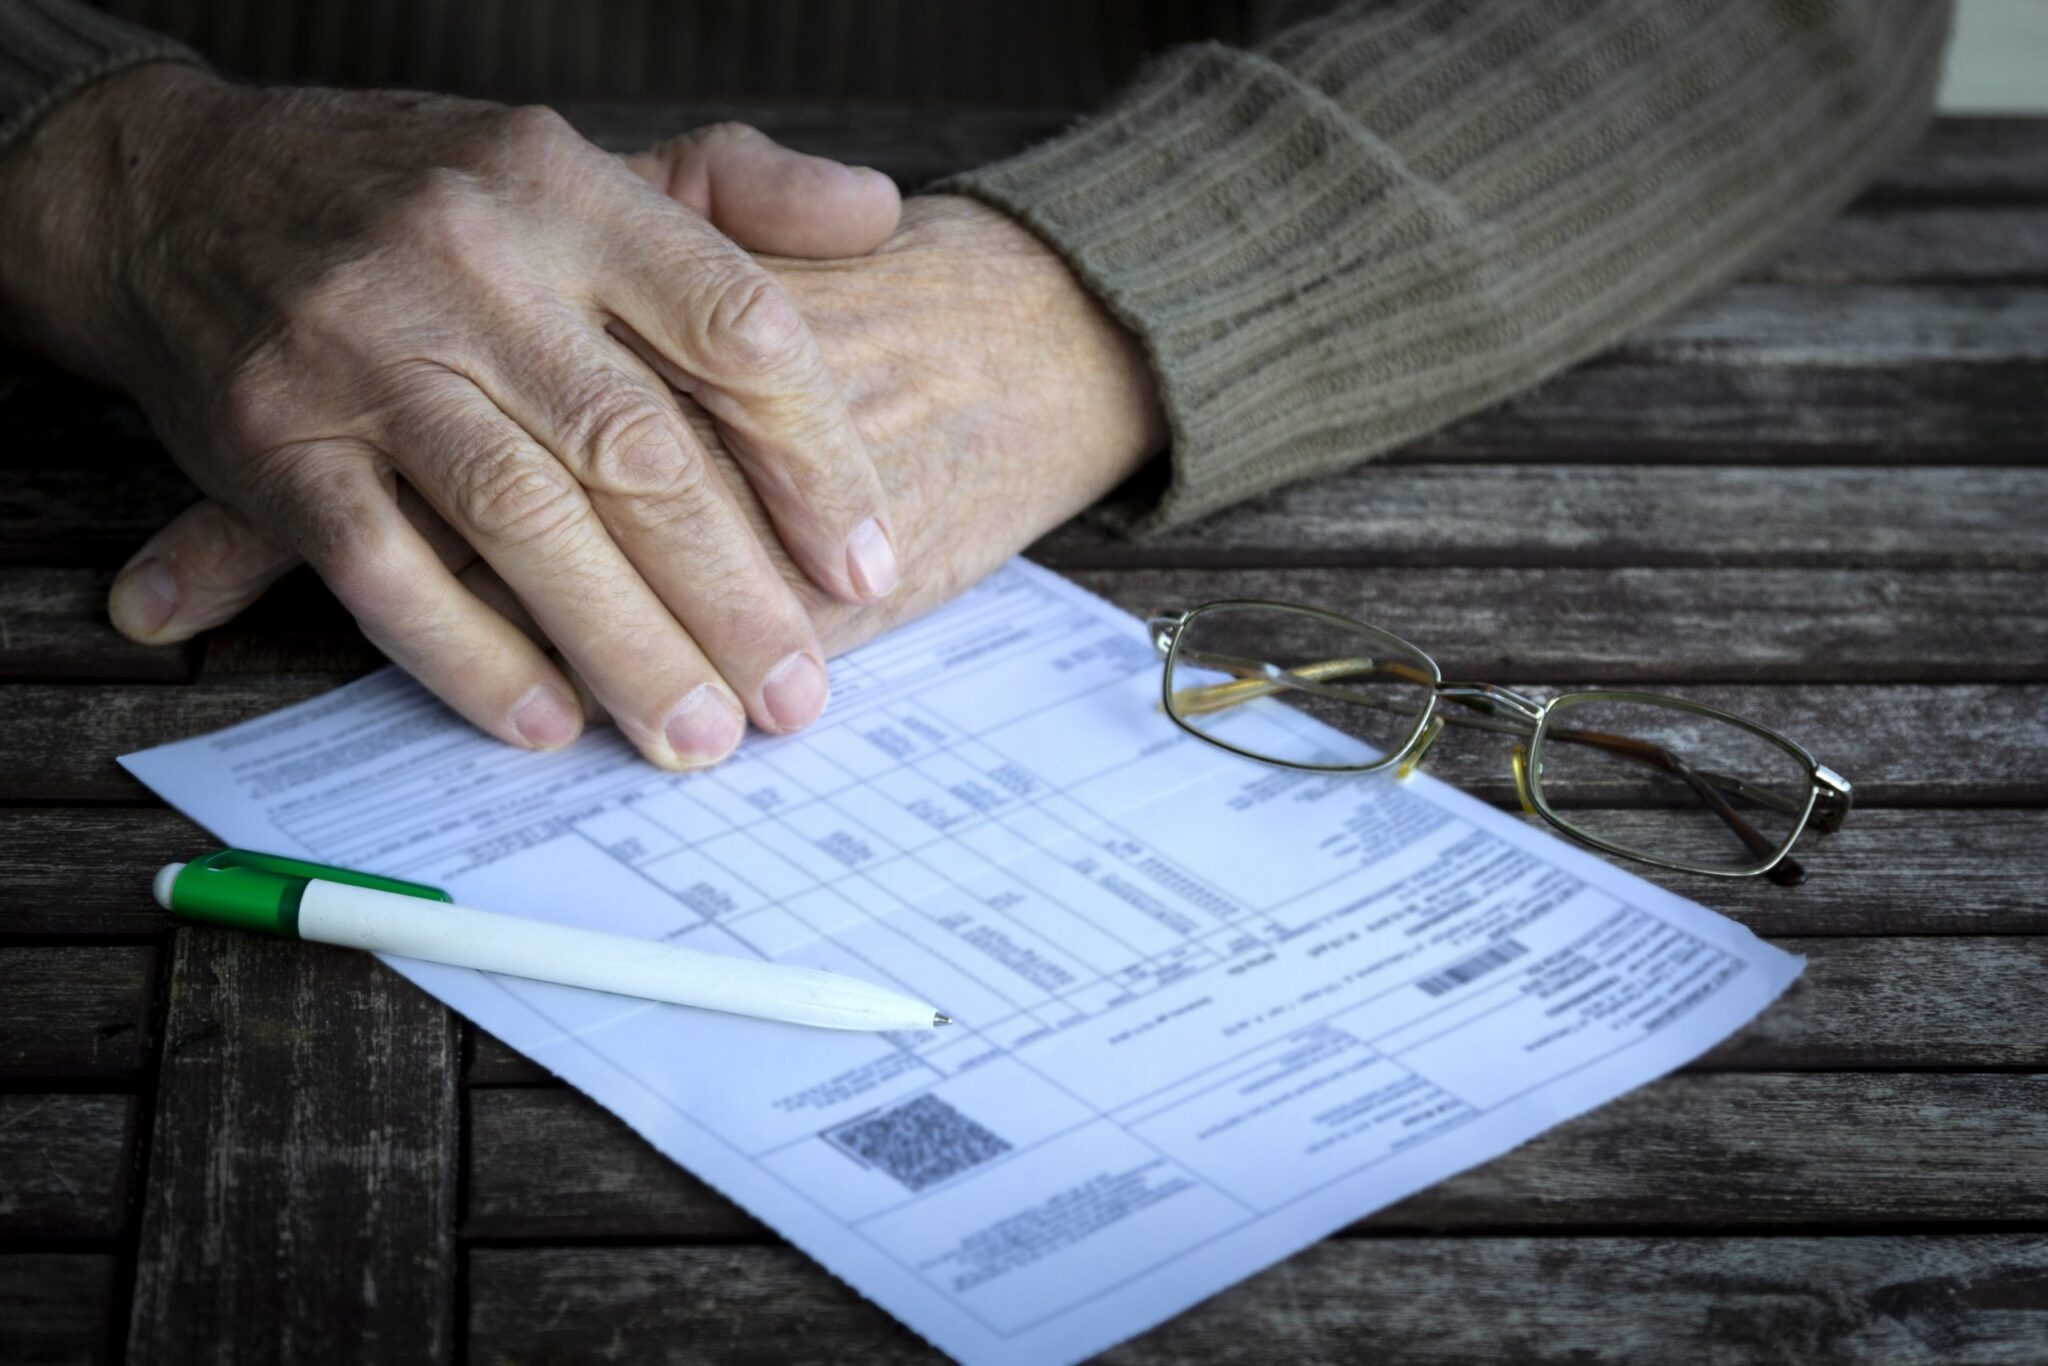 Hands of senior next to a form